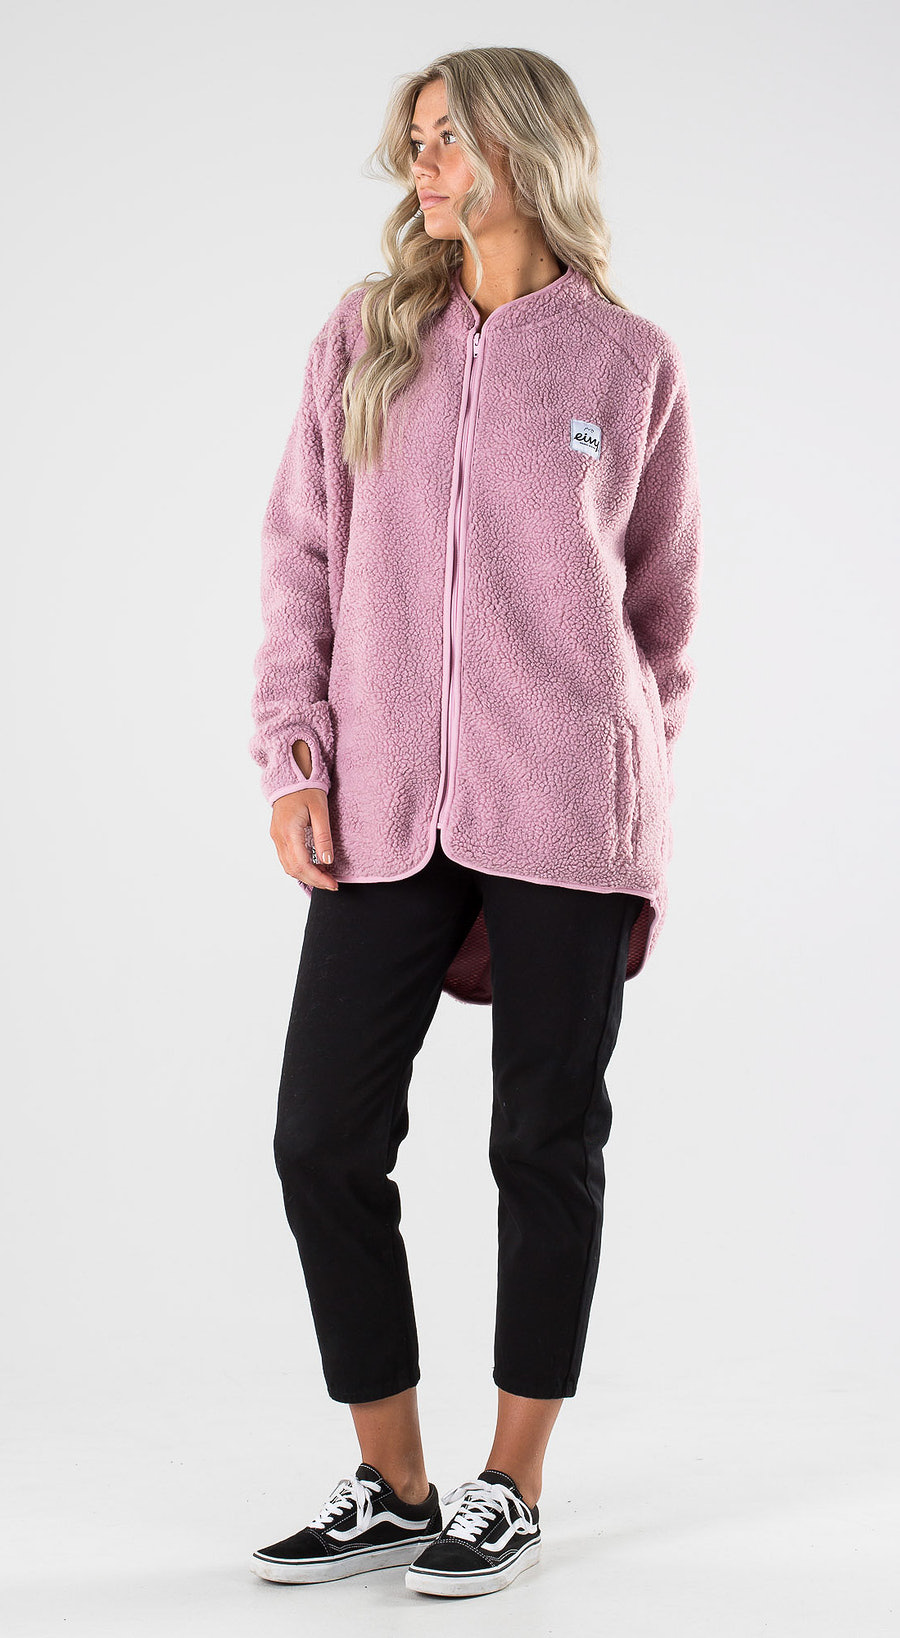 Eivy Redwood Sherpa Jacket Faded Pink Outfit Multi